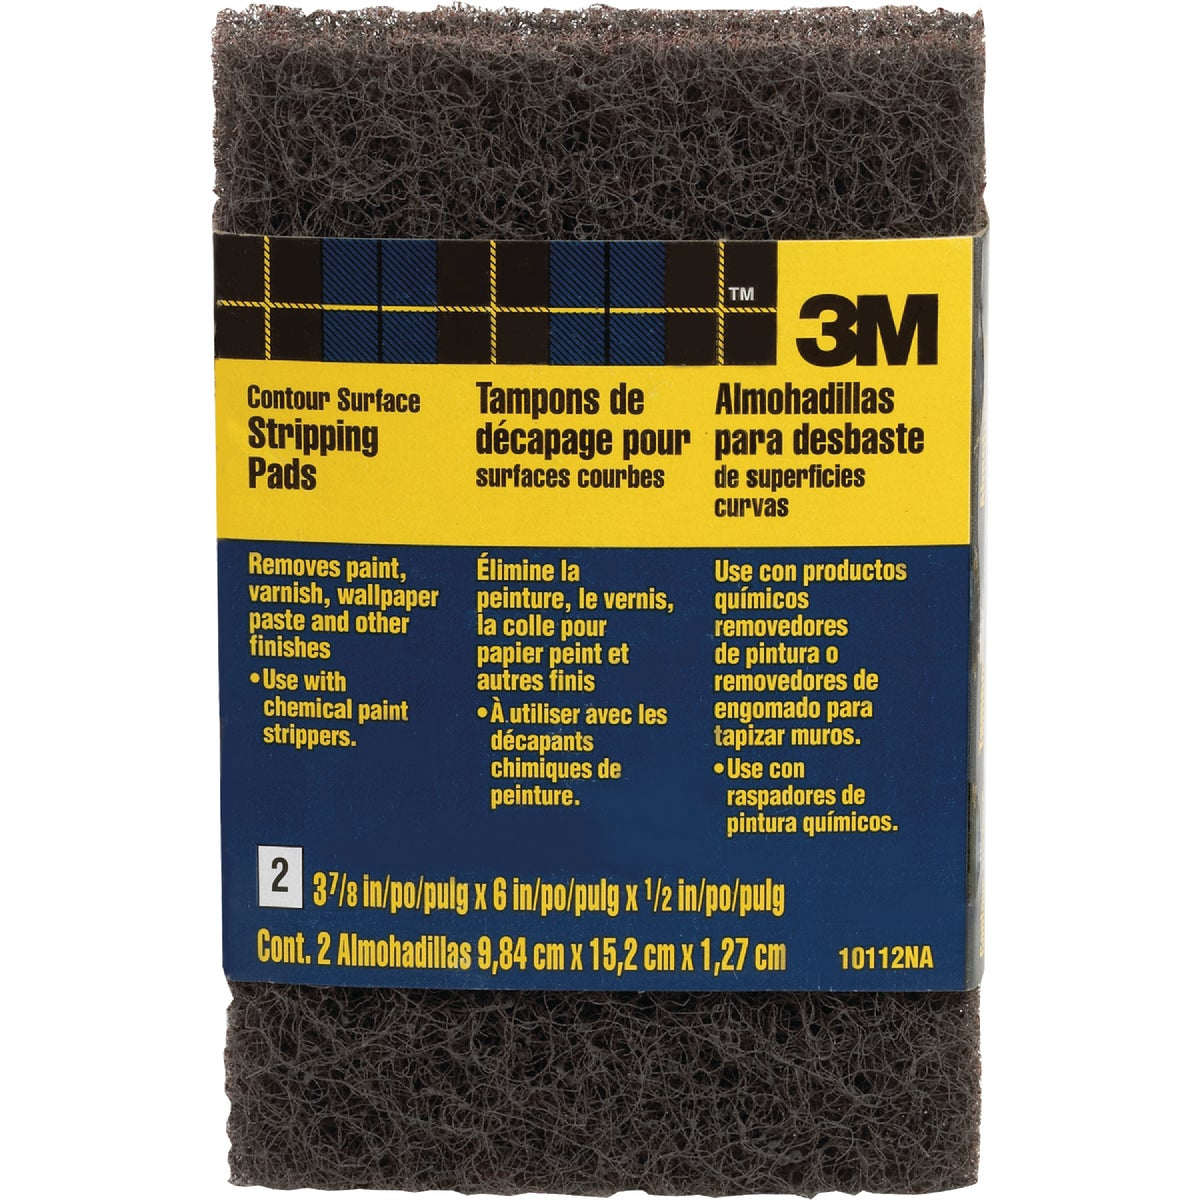 2PK H/D STRIPPING PADS - 10112NA by 3m Co